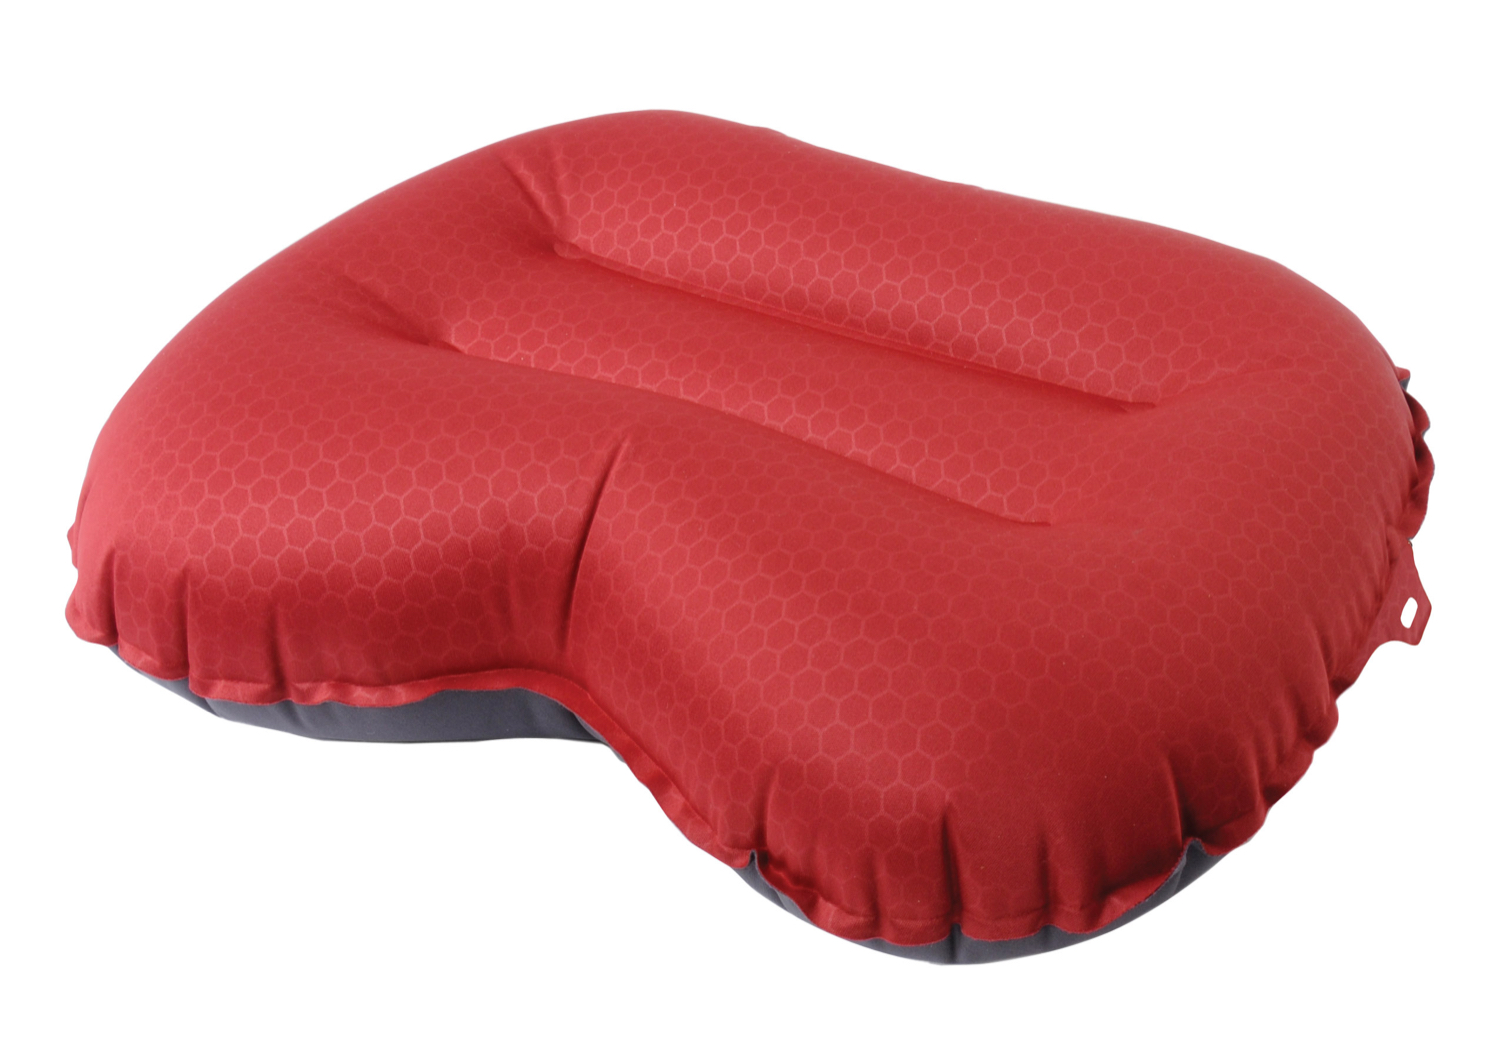 Exped Air Pillow XL | item_misc